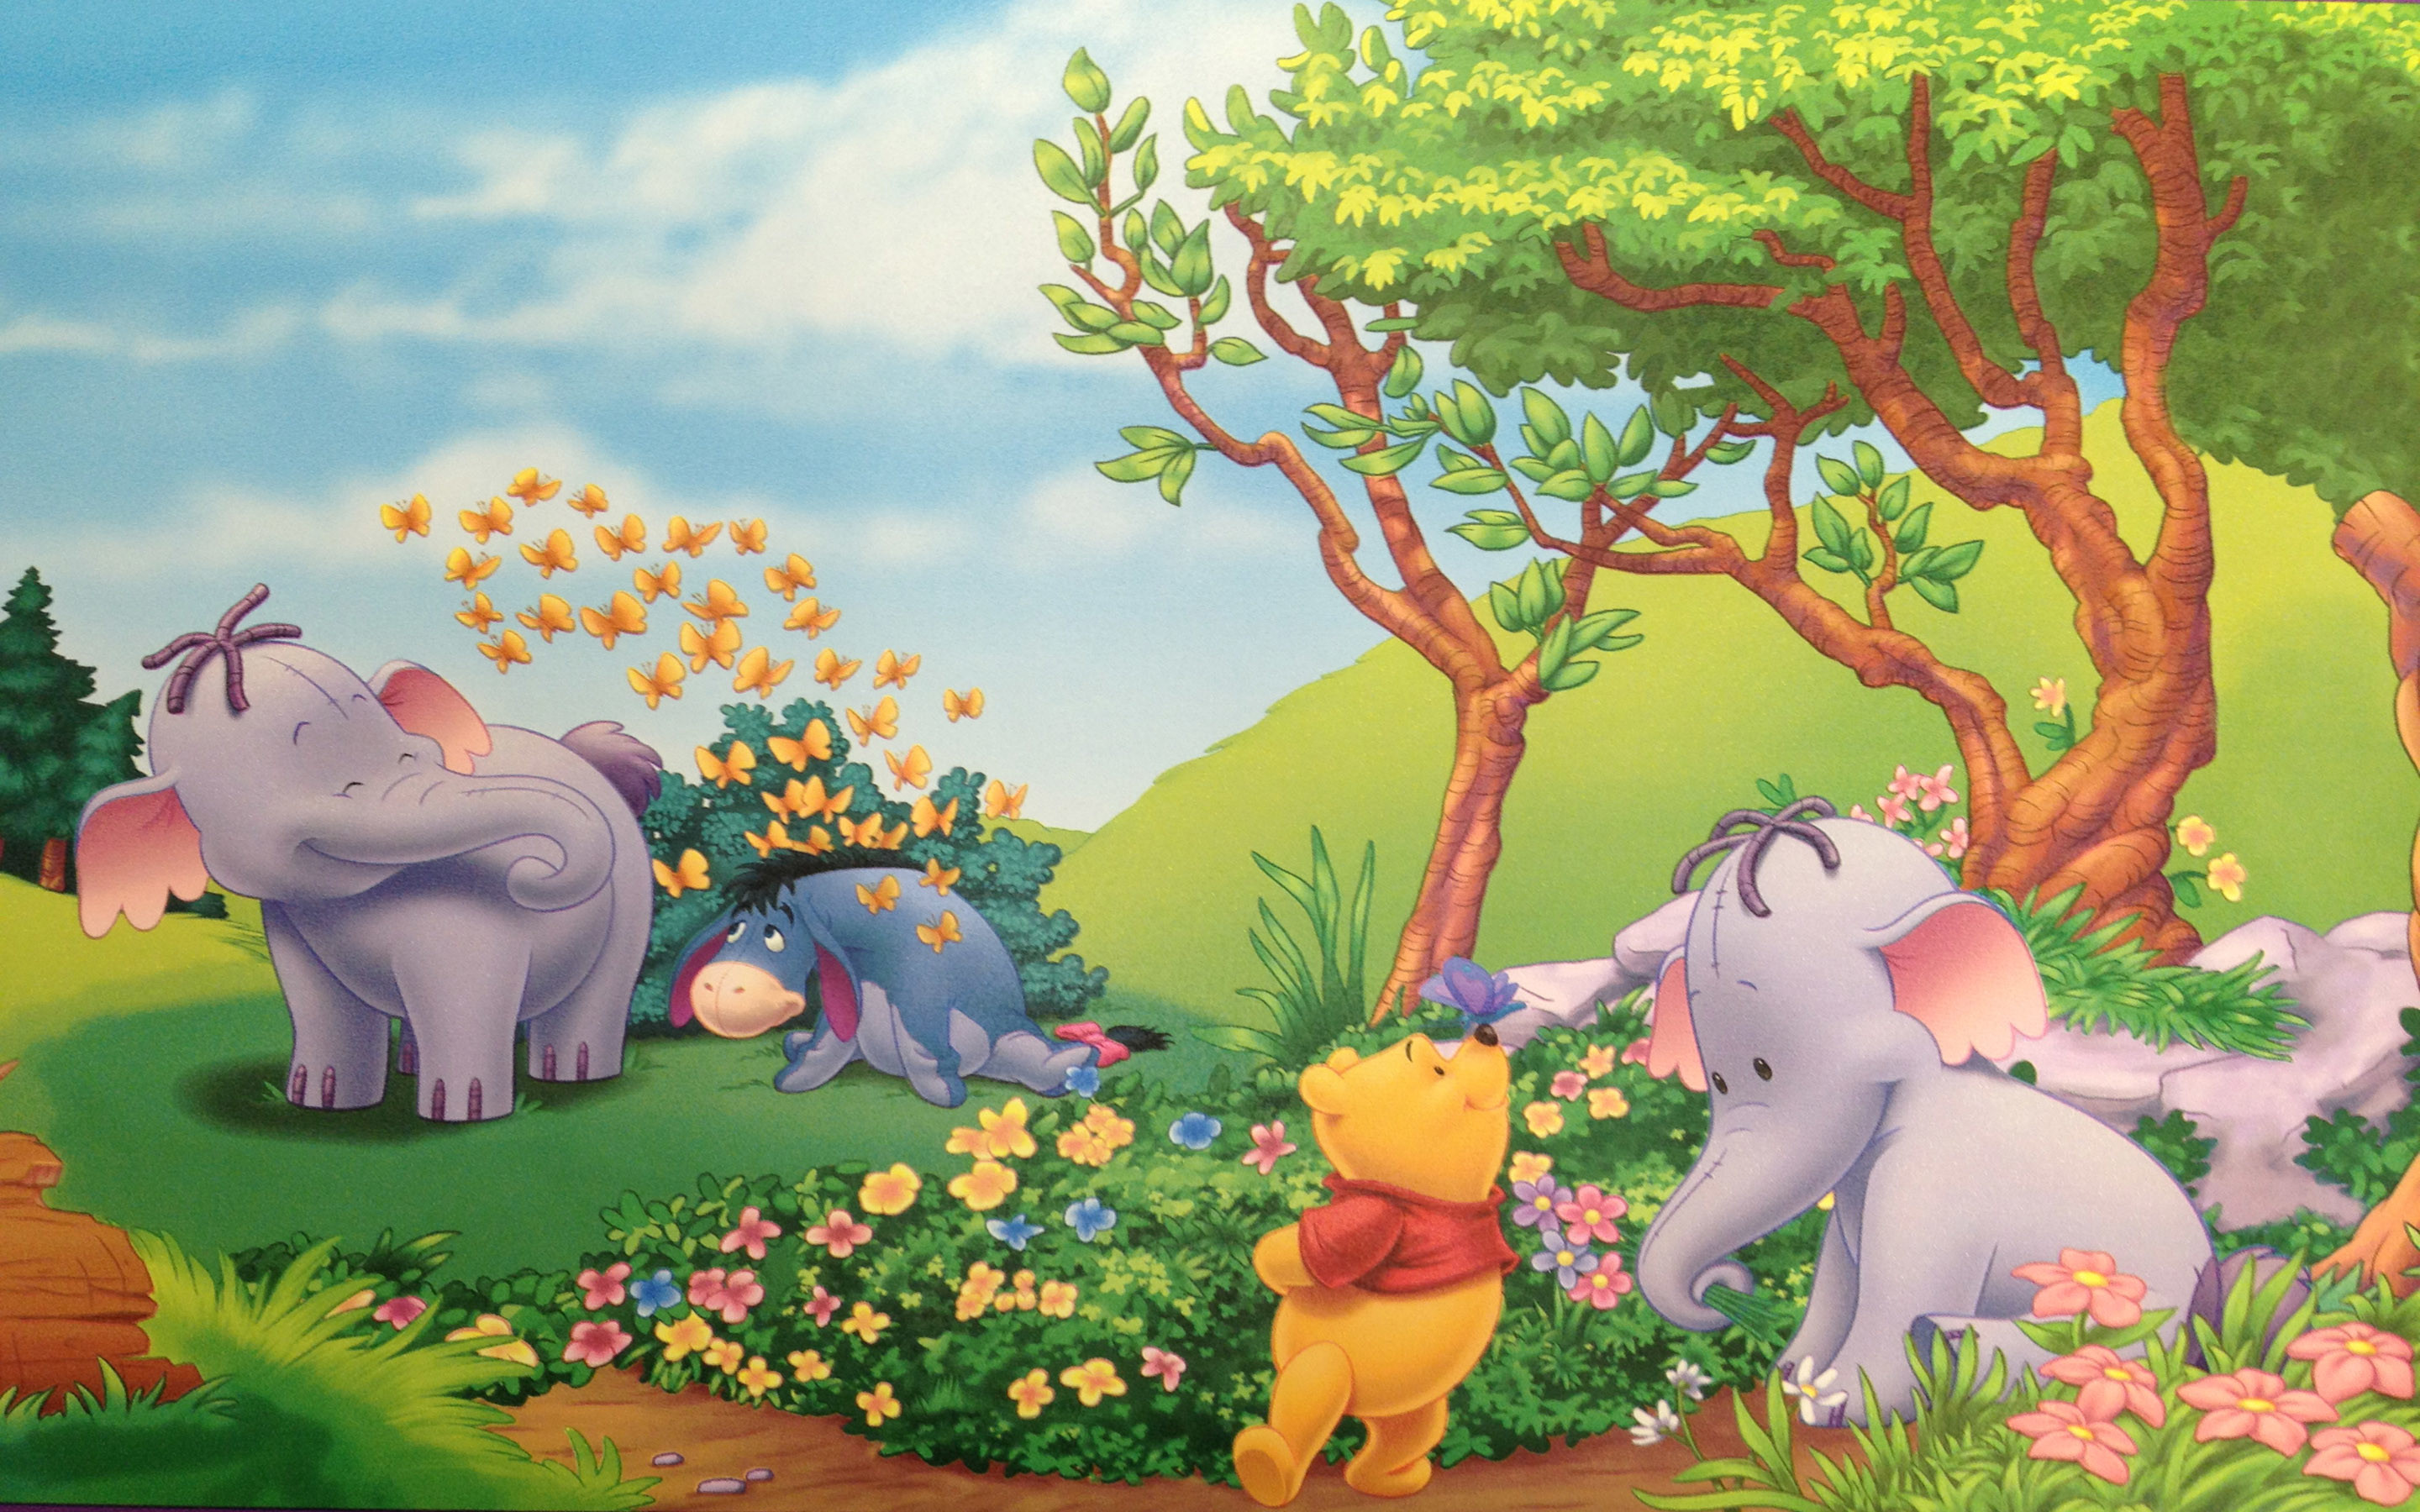 Res: 2880x1800, Cartoon Wallpaper Hd Of Winnie The Pooh Images Photos Eeyore And Elephant  Heffalump Summer Flowers Androids